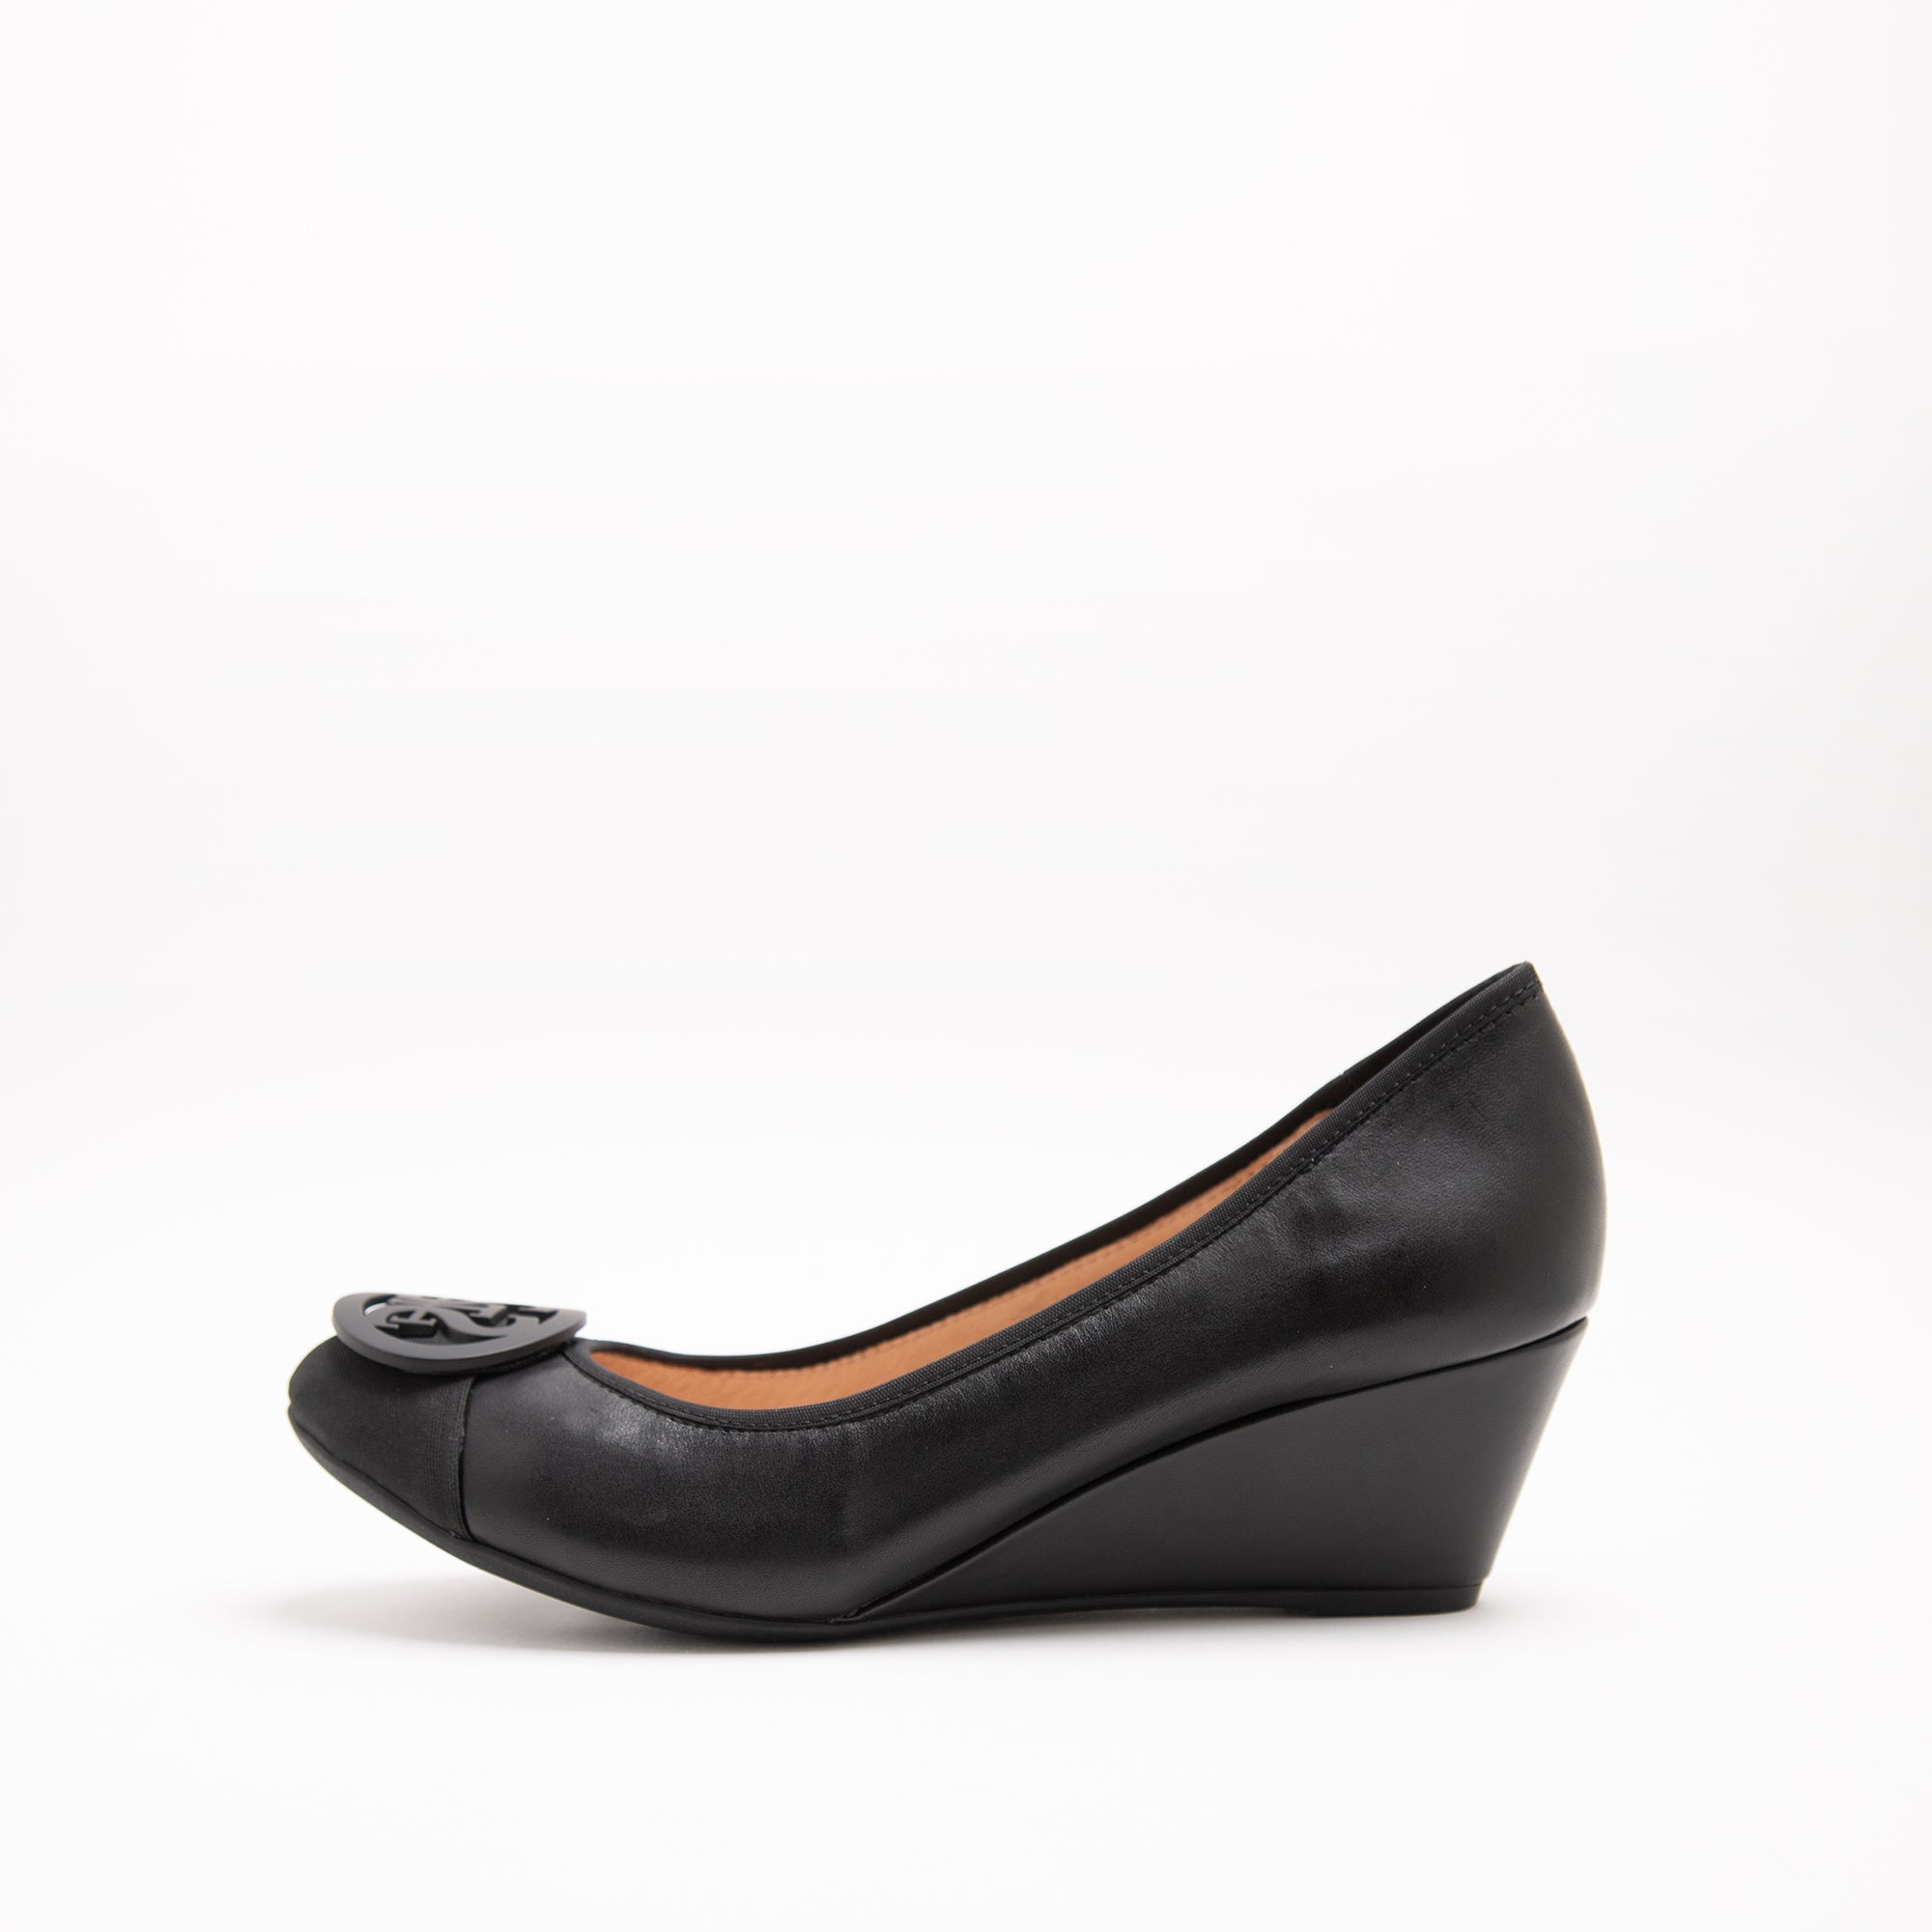 STACCATO BUCKLE WEDGE PUMPS